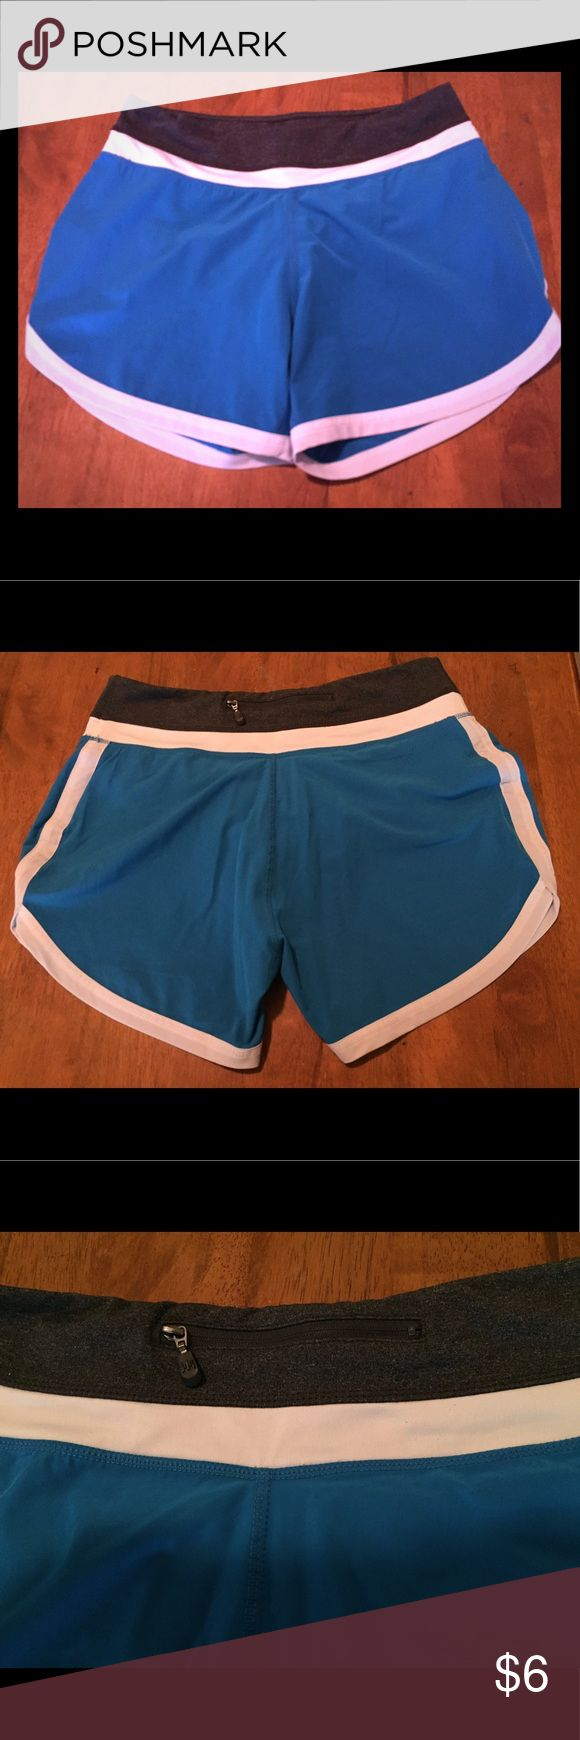 Women's Petite/Small Athletic Shorts Run in these comfy athletic shorts, or just lounge around the house in them. Pretty blue with white along the bottom and middle and a touch of gray on the top. There's a small zipper pocket in the middle on the backside of shorts along the waste band. Kyodan Shorts